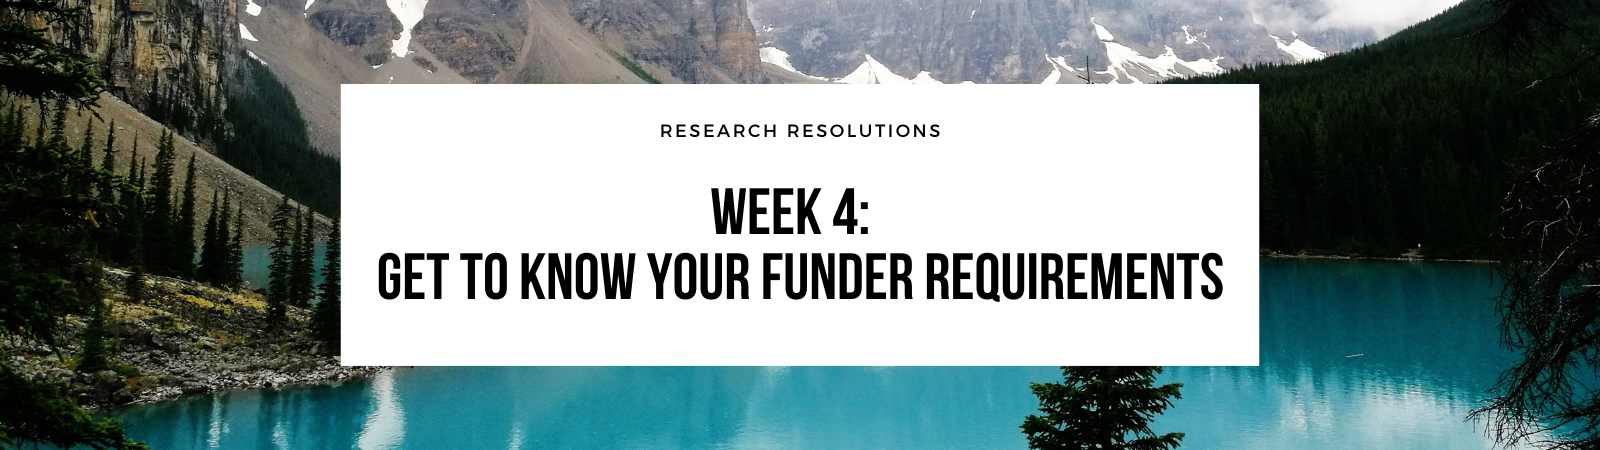 Week 4: Get to know your funder requirements